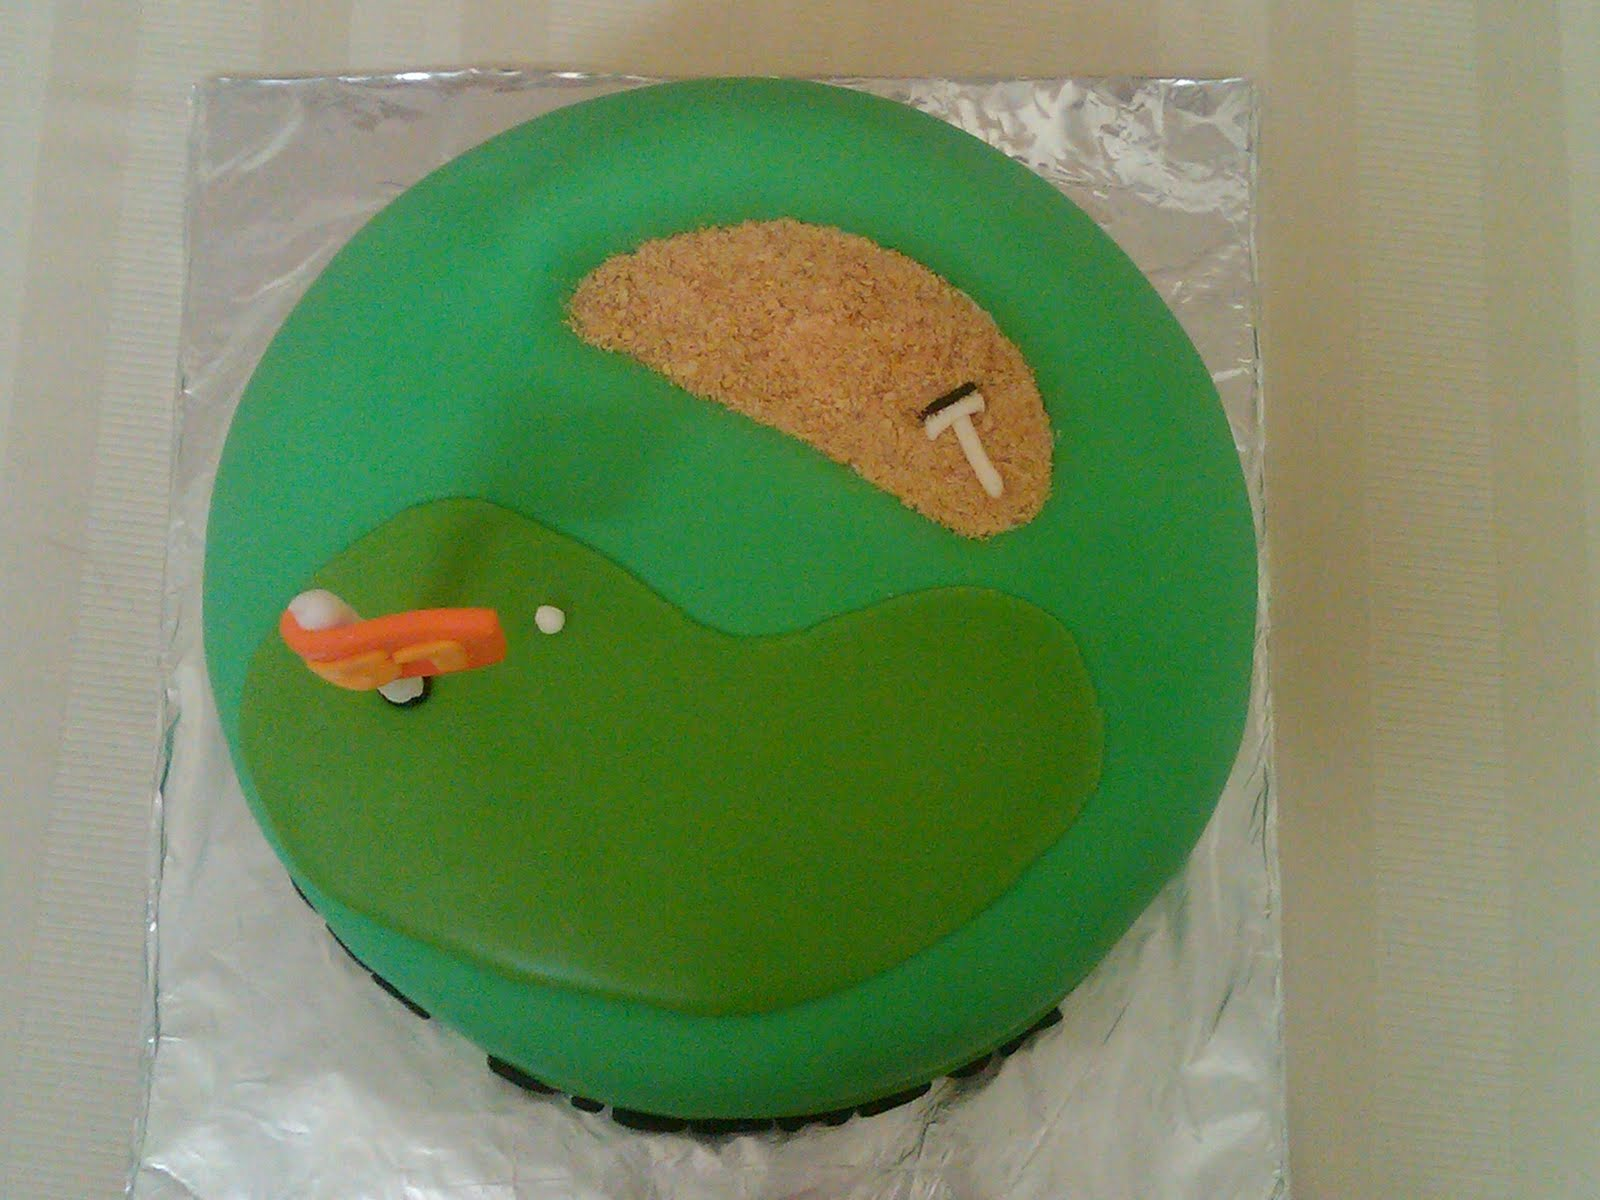 Golf Green Cake Made For A 51st Birthday 8 Inch Chocolate With Buttercream Filling Covered In Fondant Sand Trap Gram Craker